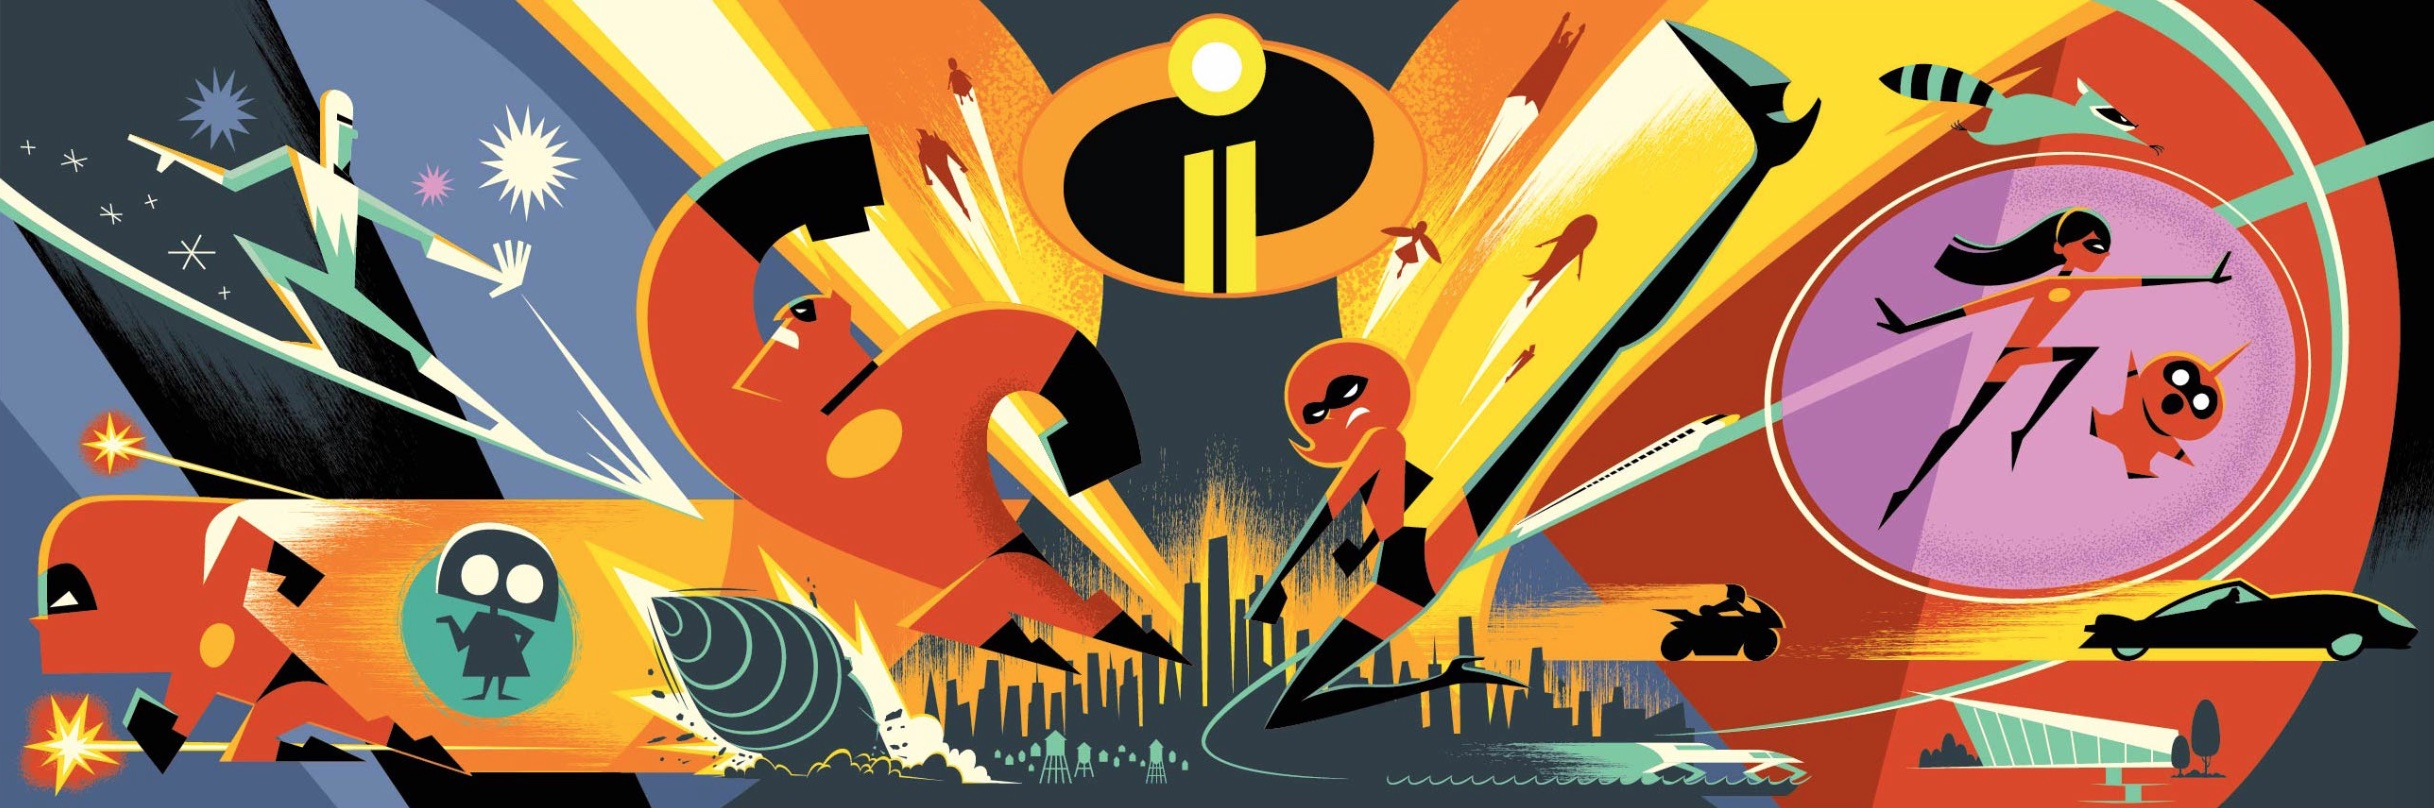 Incredibles 2 concept art ted matzot